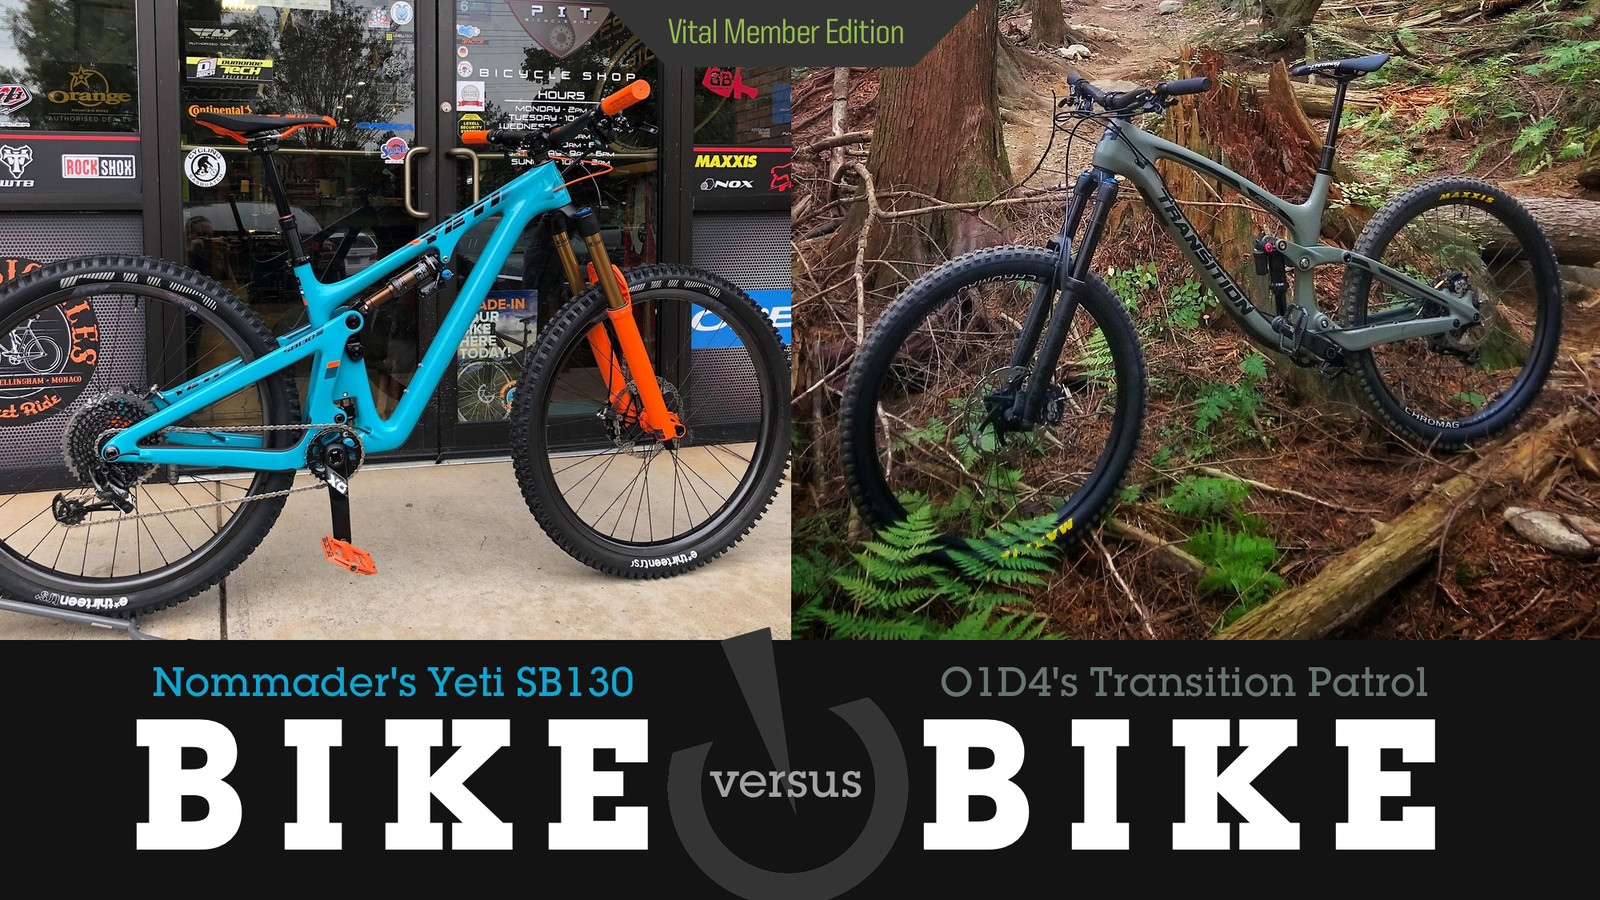 Bike vs. Bike - Transition Patrol Carbon or Yeti SB130 Turq?